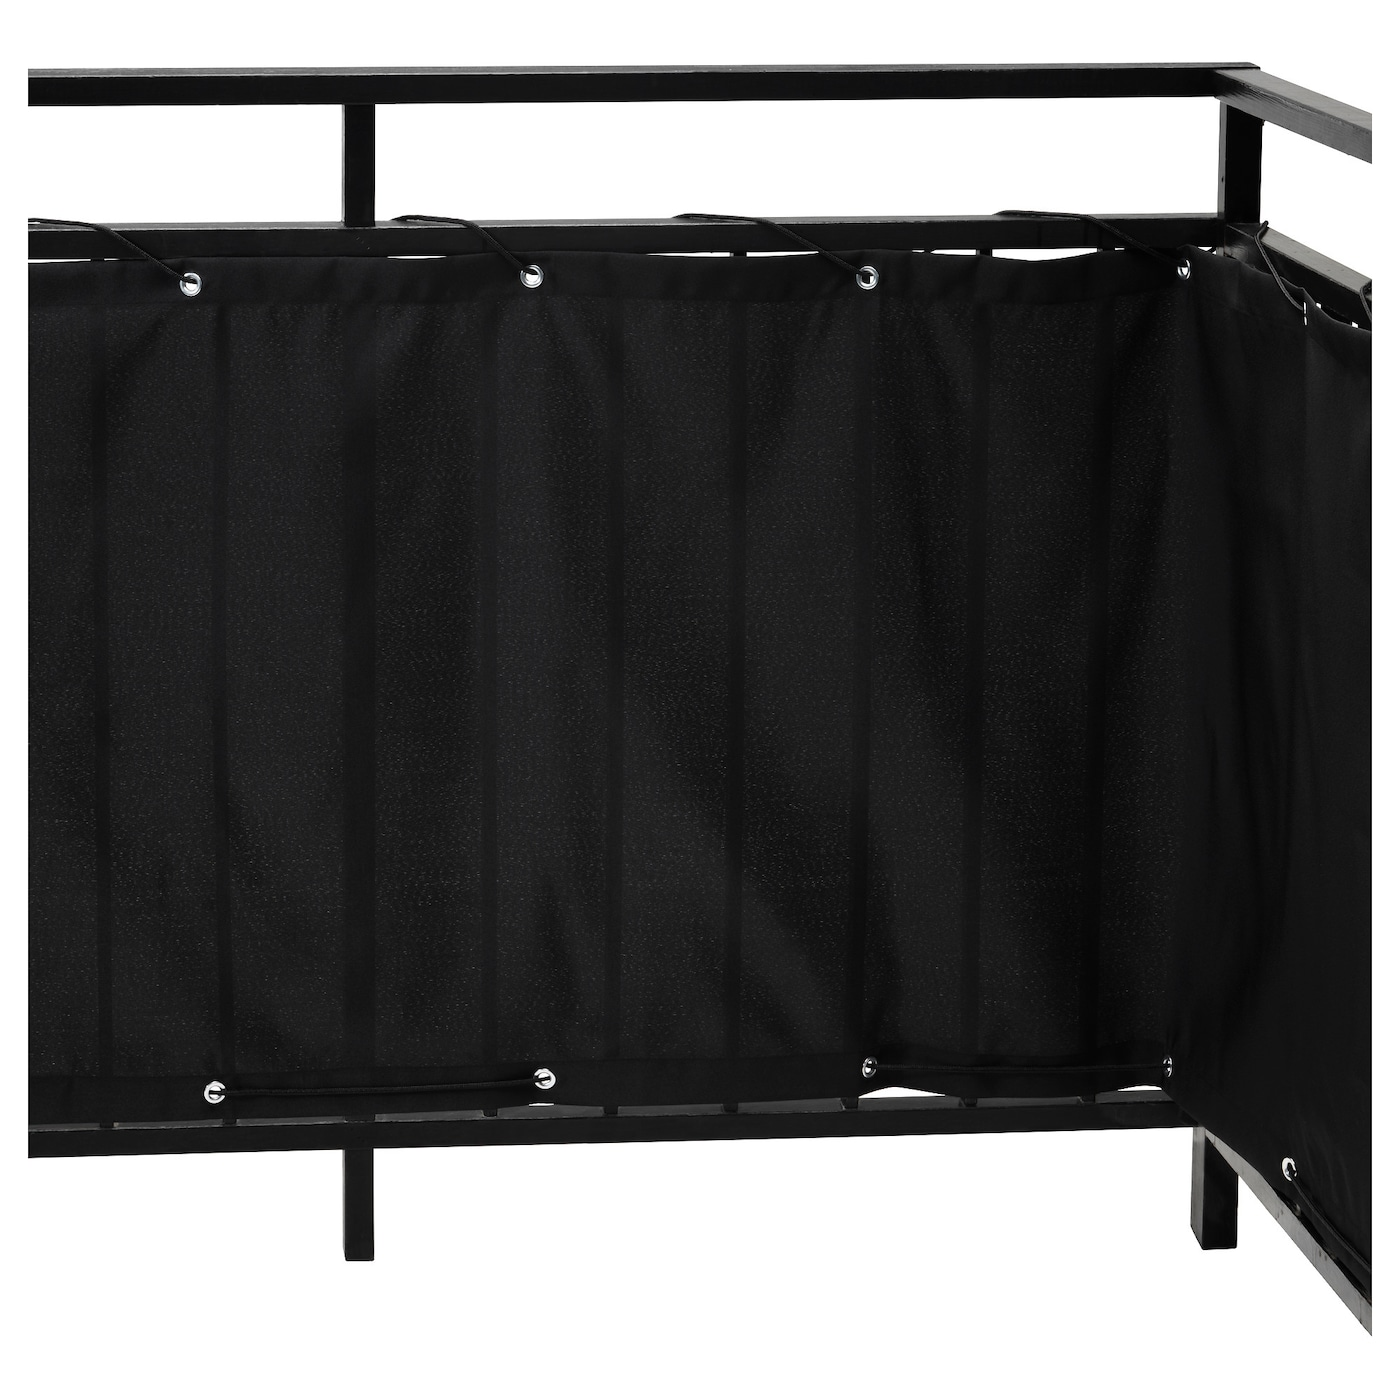 dyning brise vue pour balcon noir 250 x 80 cm ikea. Black Bedroom Furniture Sets. Home Design Ideas